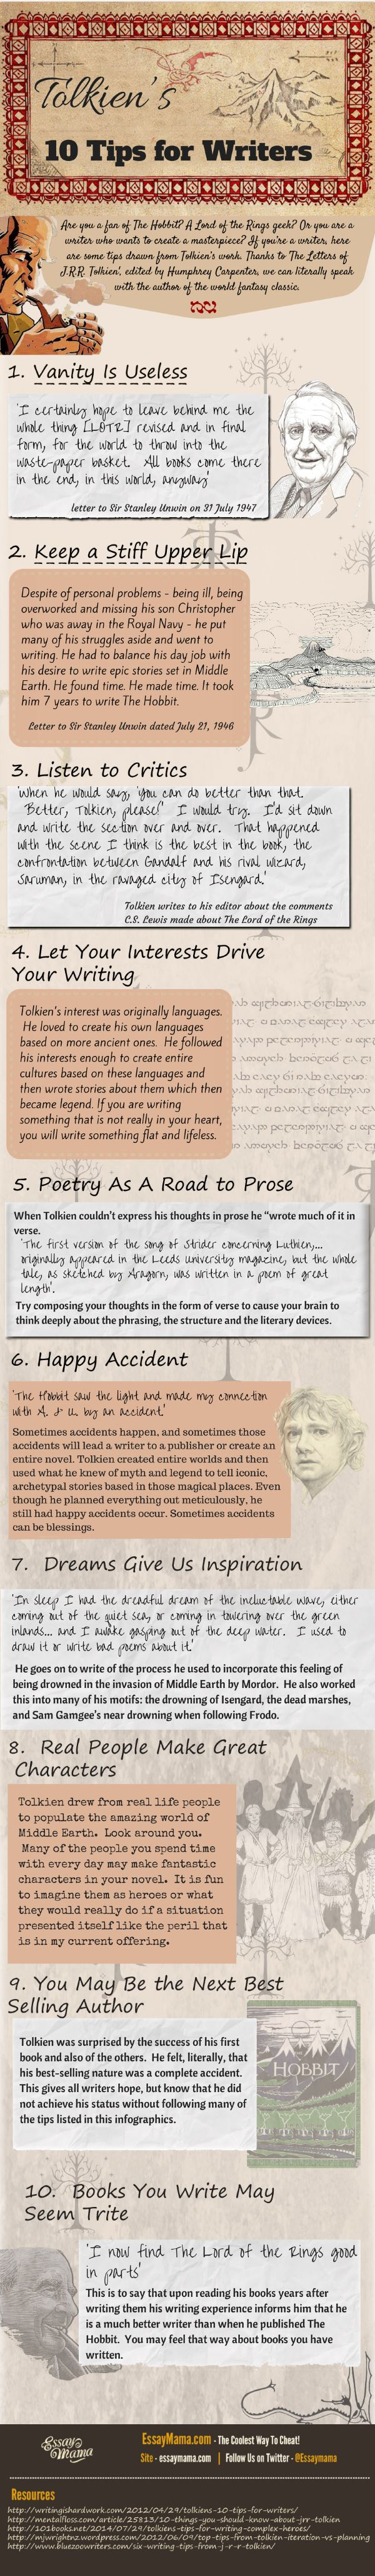 tolkien, tips for writers